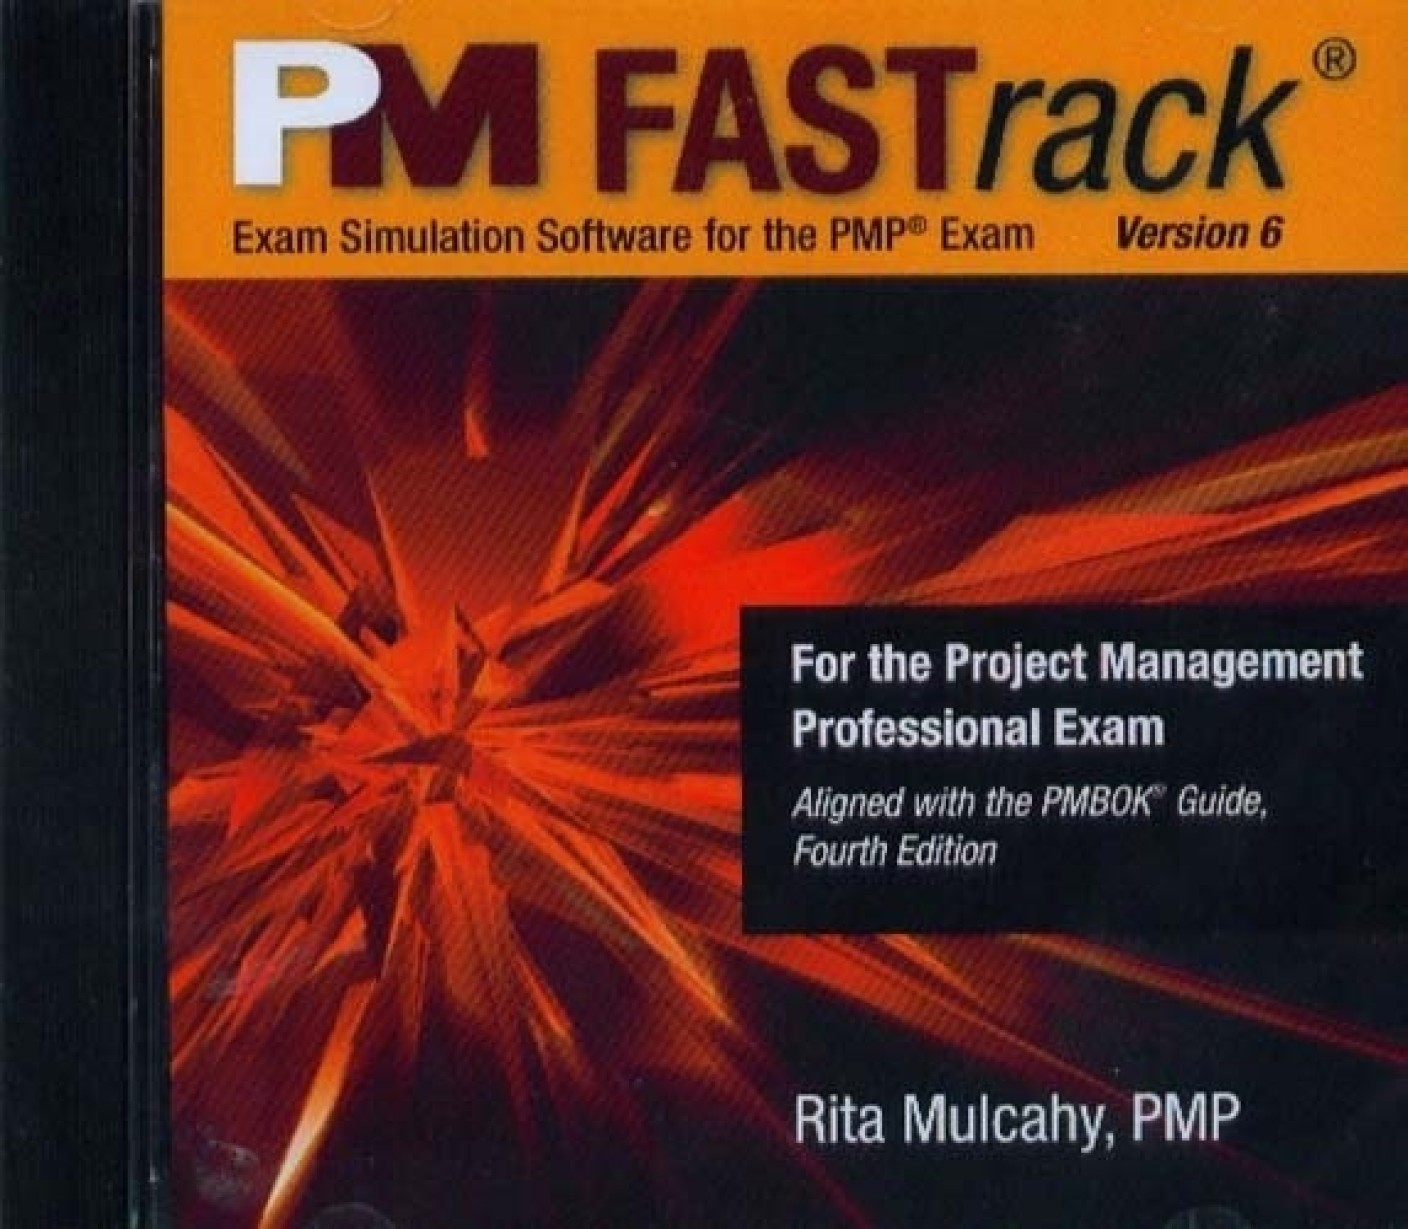 Pm fastrack exam simulation software for the pmp exam version 6 add to cart 1betcityfo Images